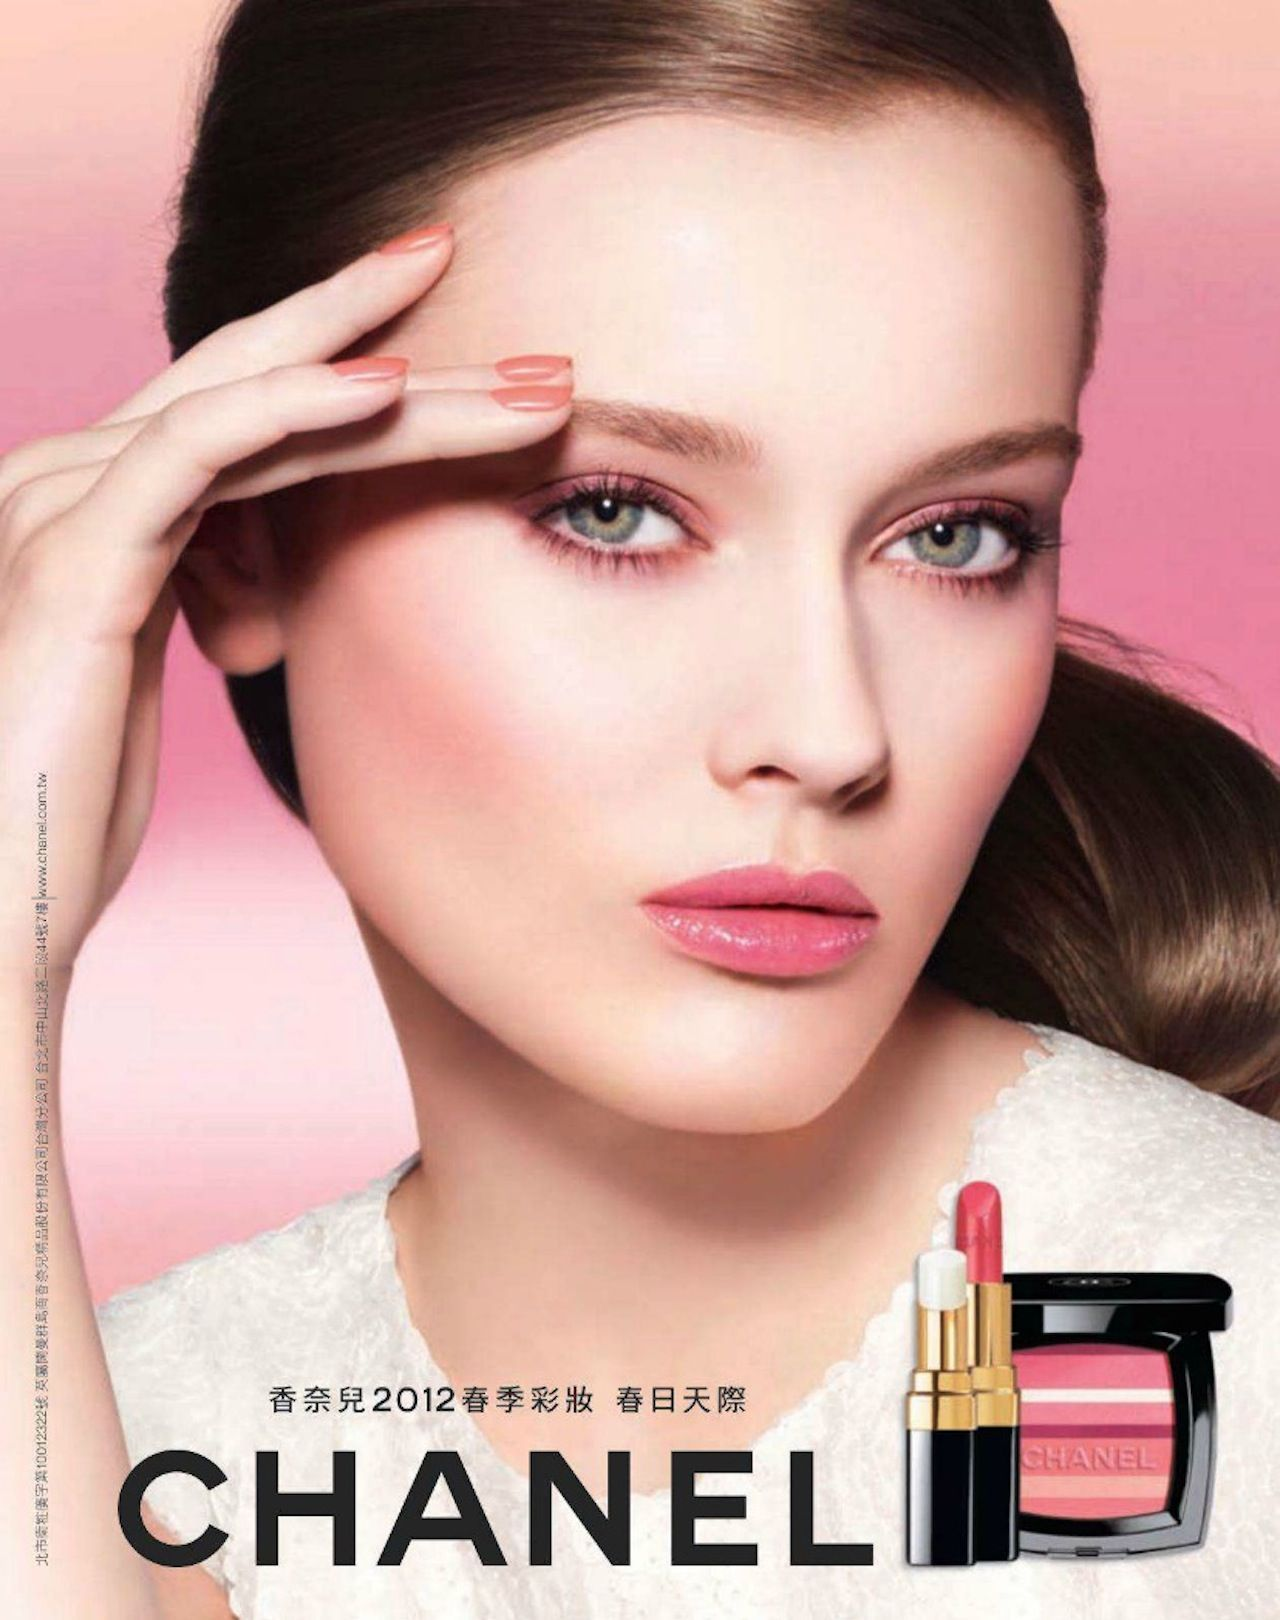 Chanel Beauty Spring Summer 2012 Ad Campaign